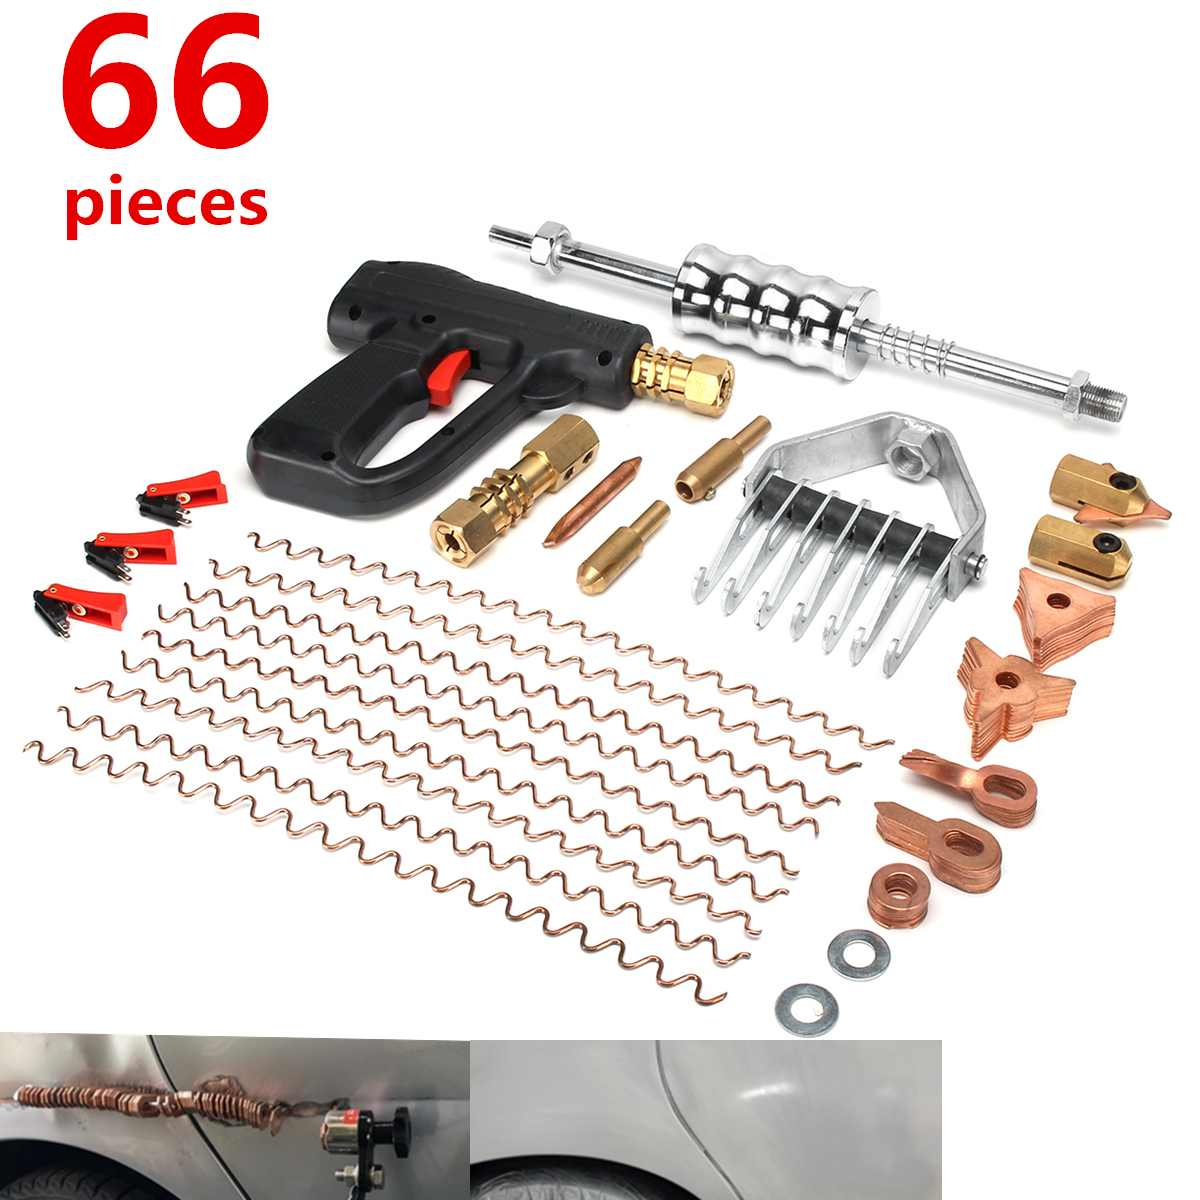 Здесь можно купить  66Pcs/Set Dent Repair Puller Kit Car Tools Hand Body Spot Guns Mini Welding Machine Auto System Spotter Fix Clamp Hammer Removal  Инструменты